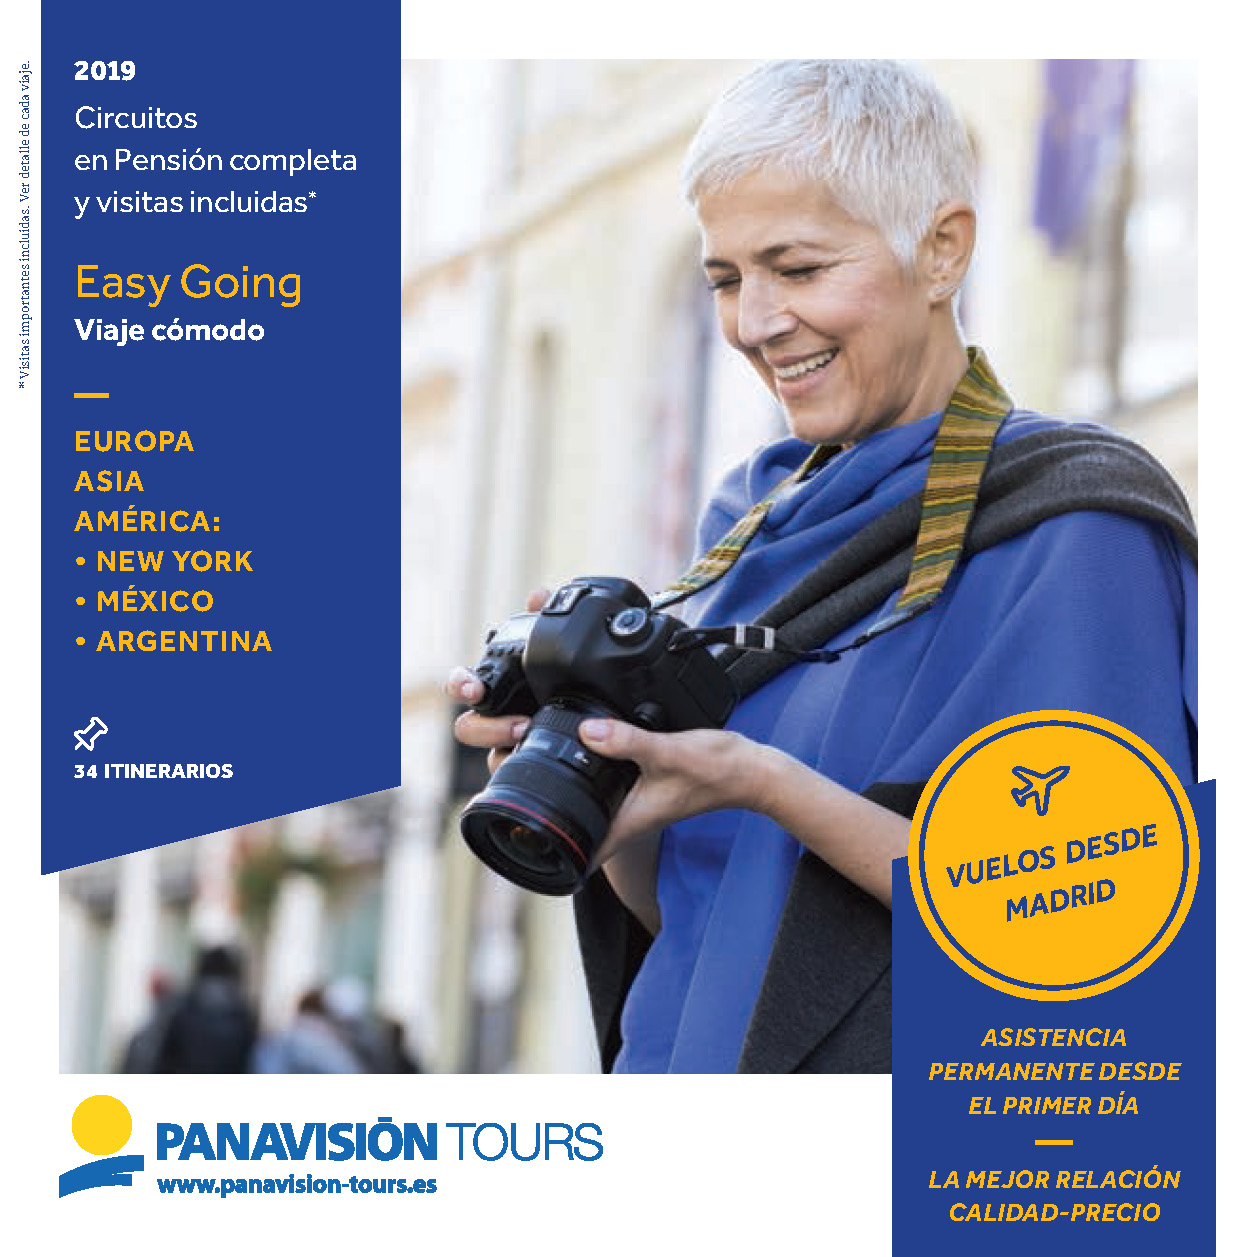 Catalogo Panavision Tours Easy Going 2019 salidas Madrid EM9